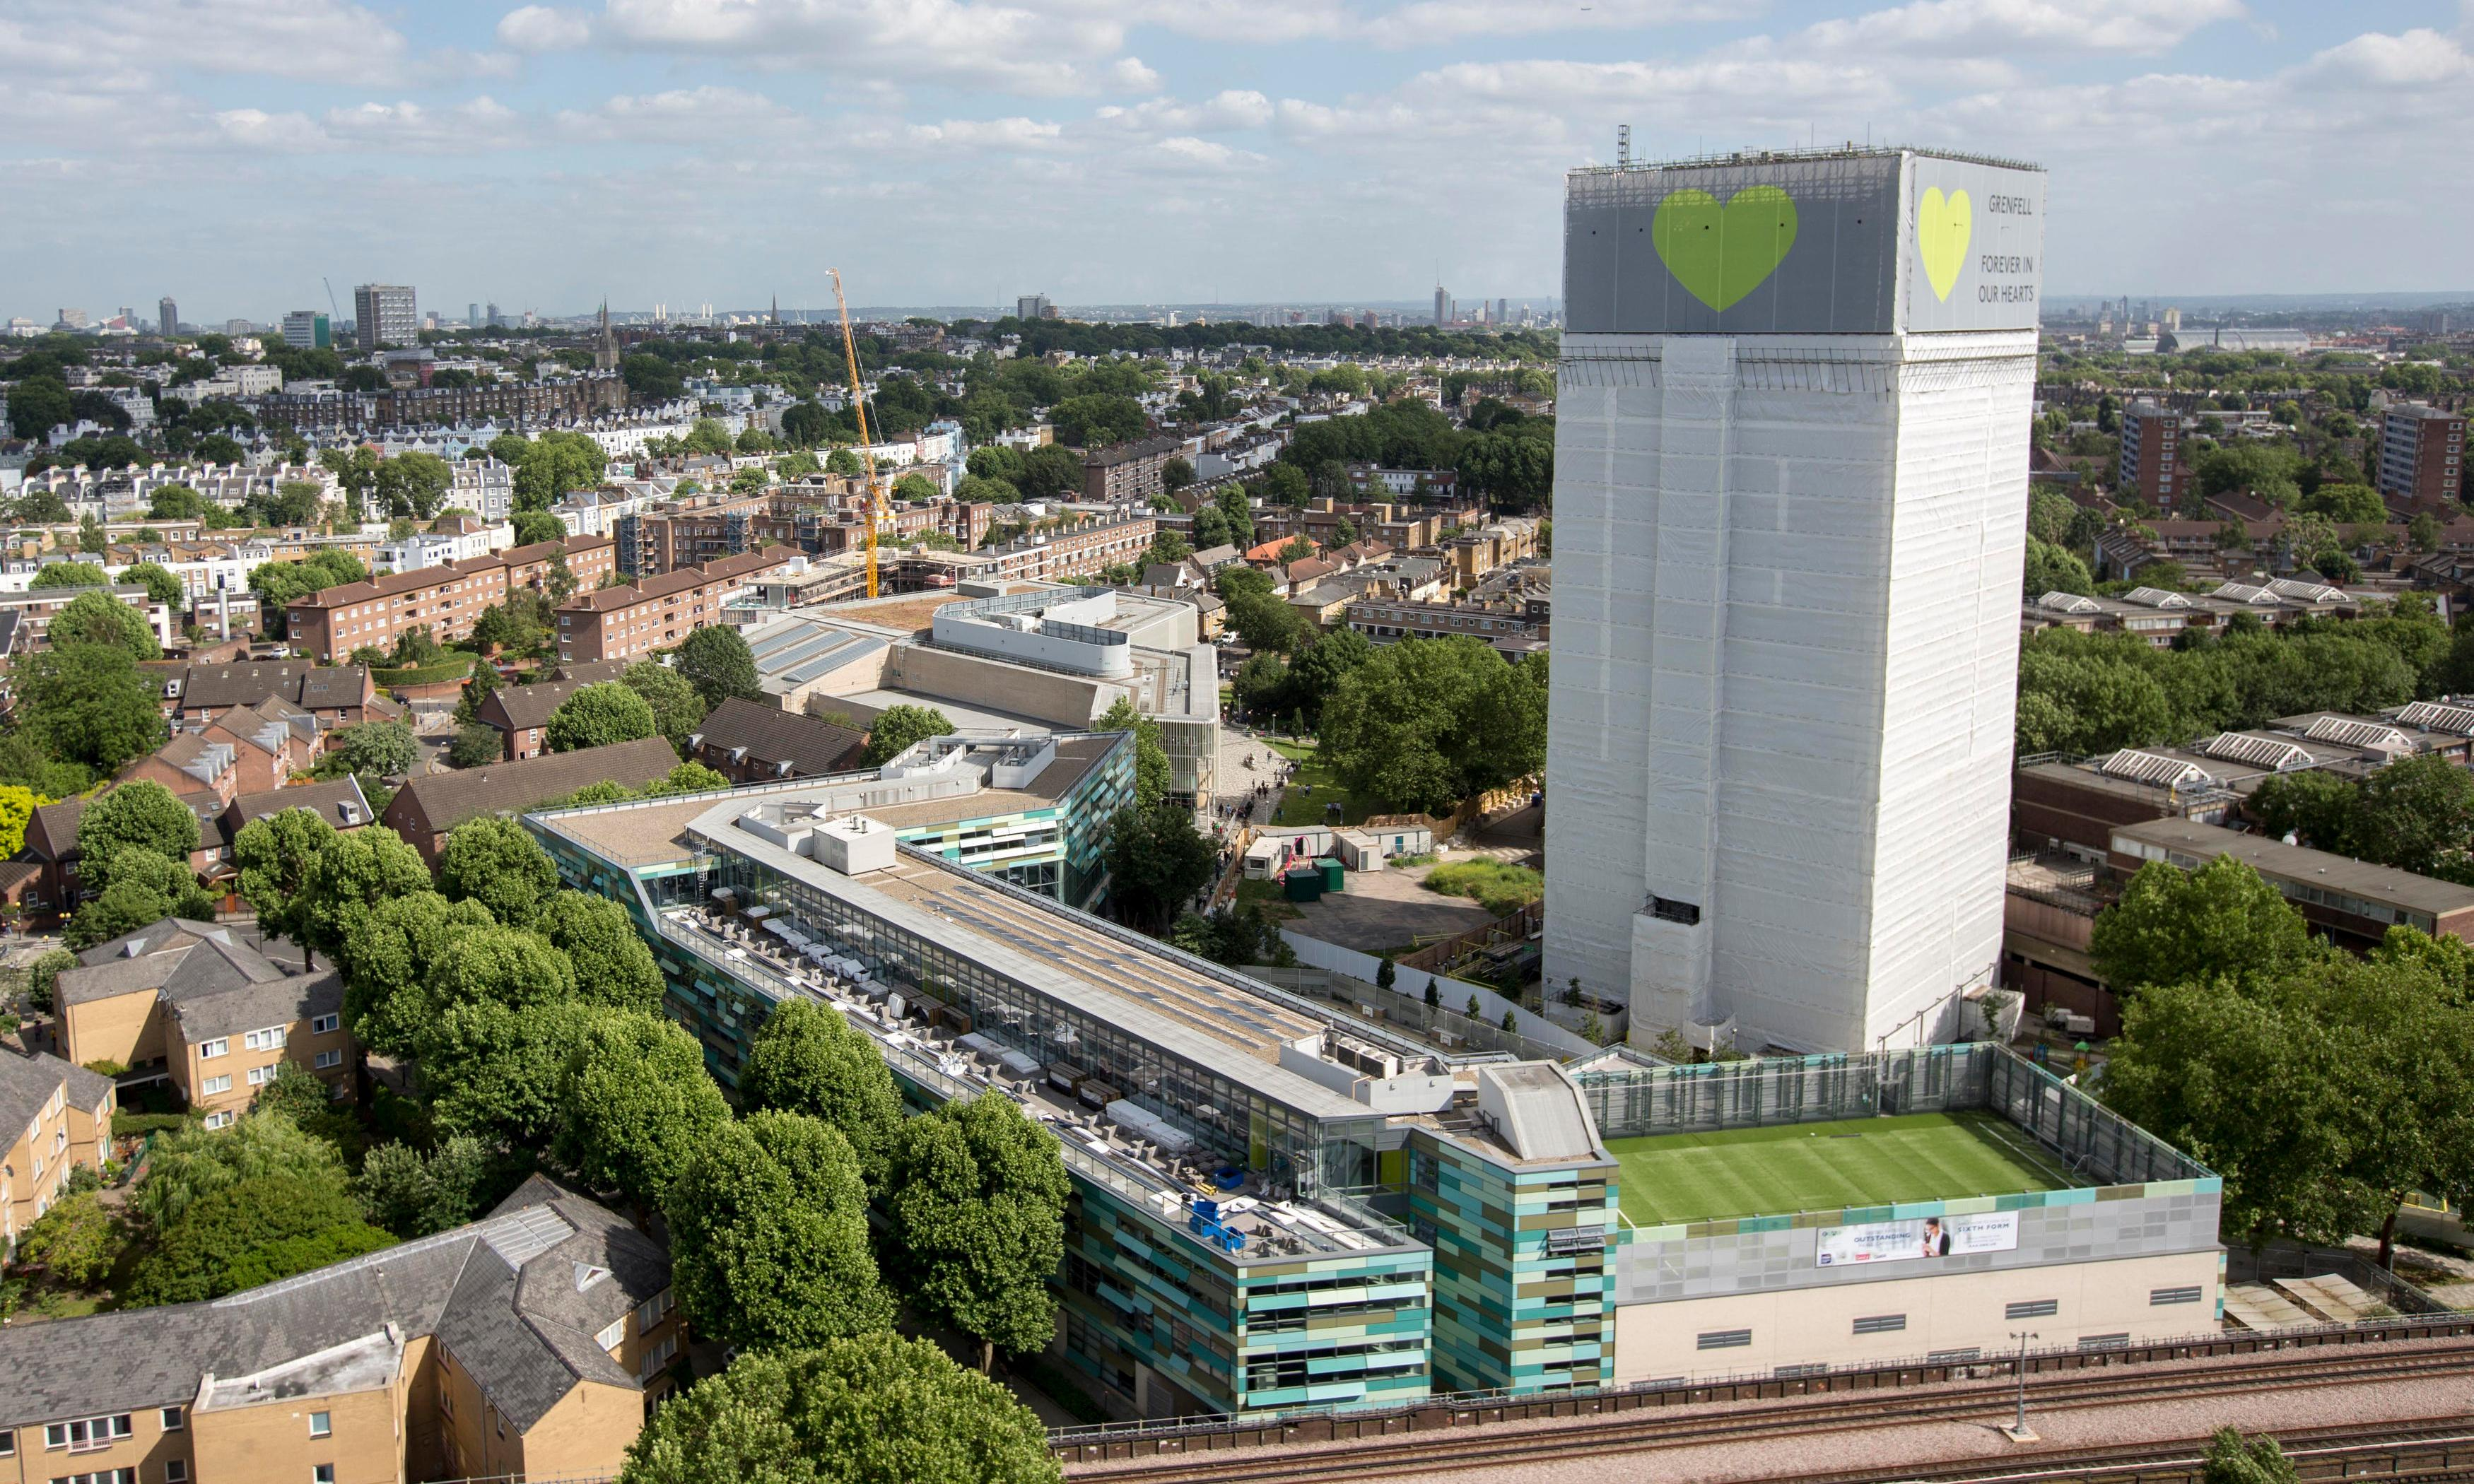 Grenfell fire safety plan did not include cladding assessment